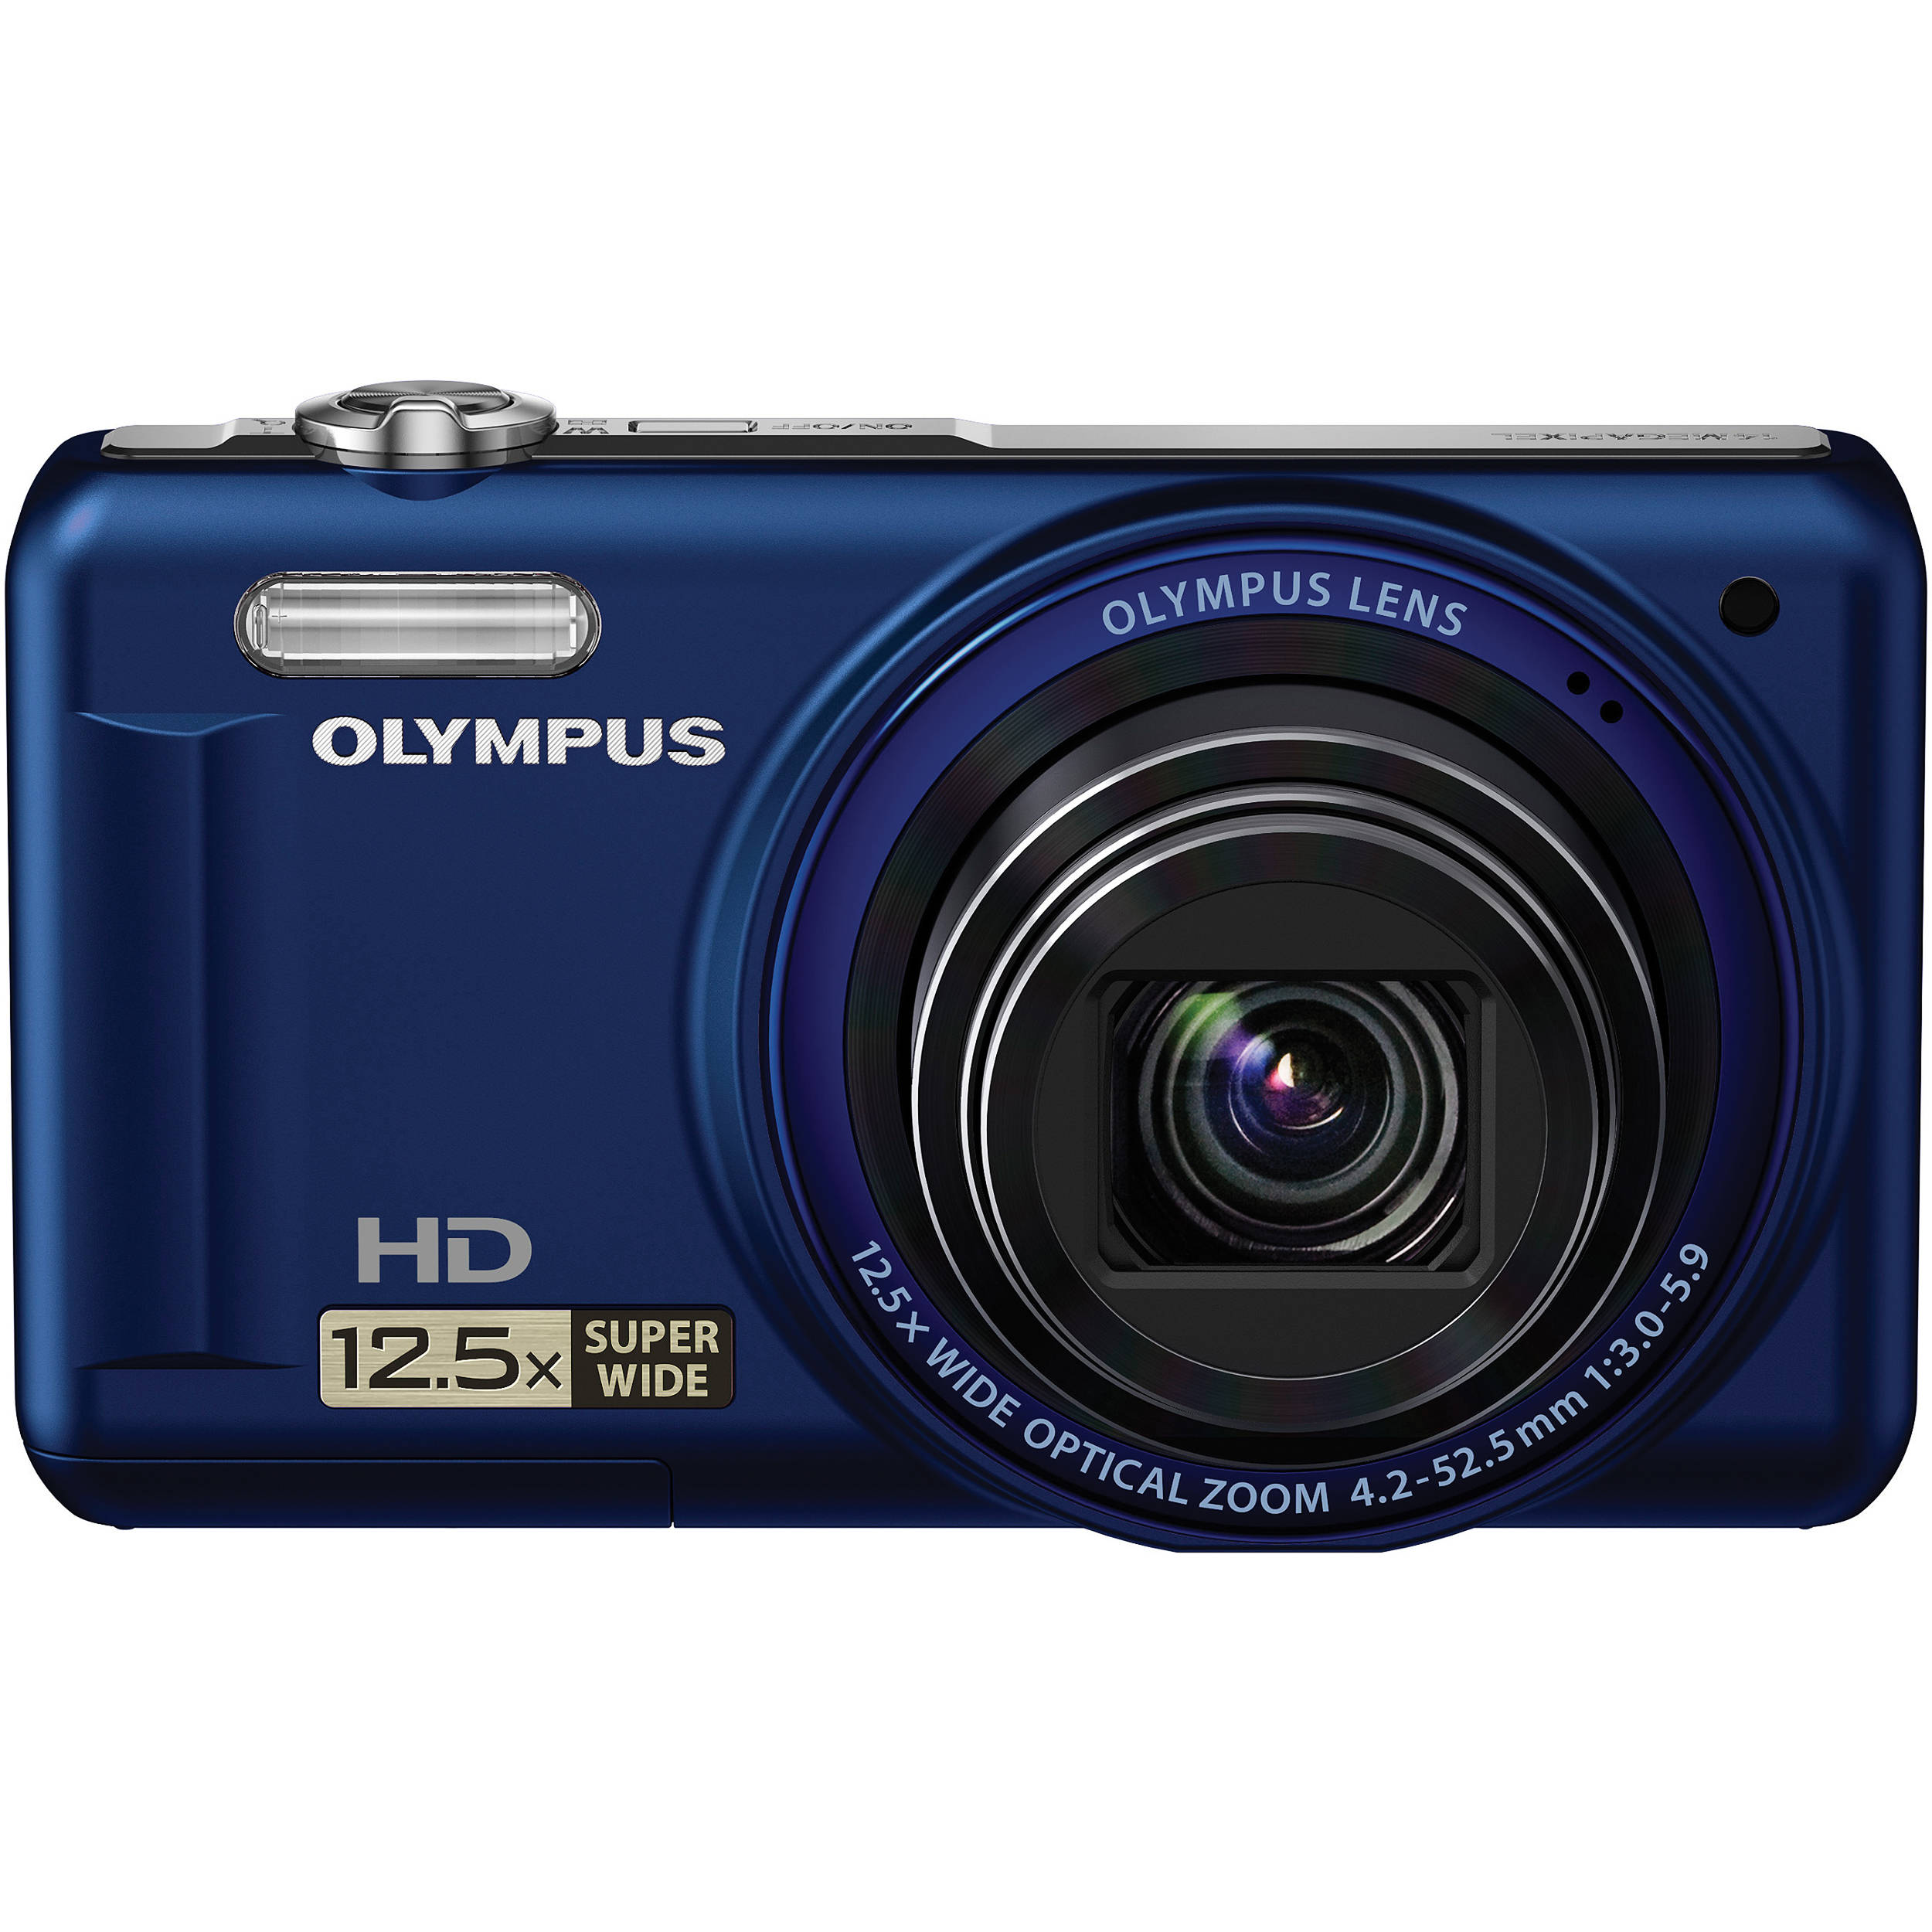 Olympus Digital Camera: Olympus VR-320 Digital Camera (Blue) 228130 B&H Photo Video